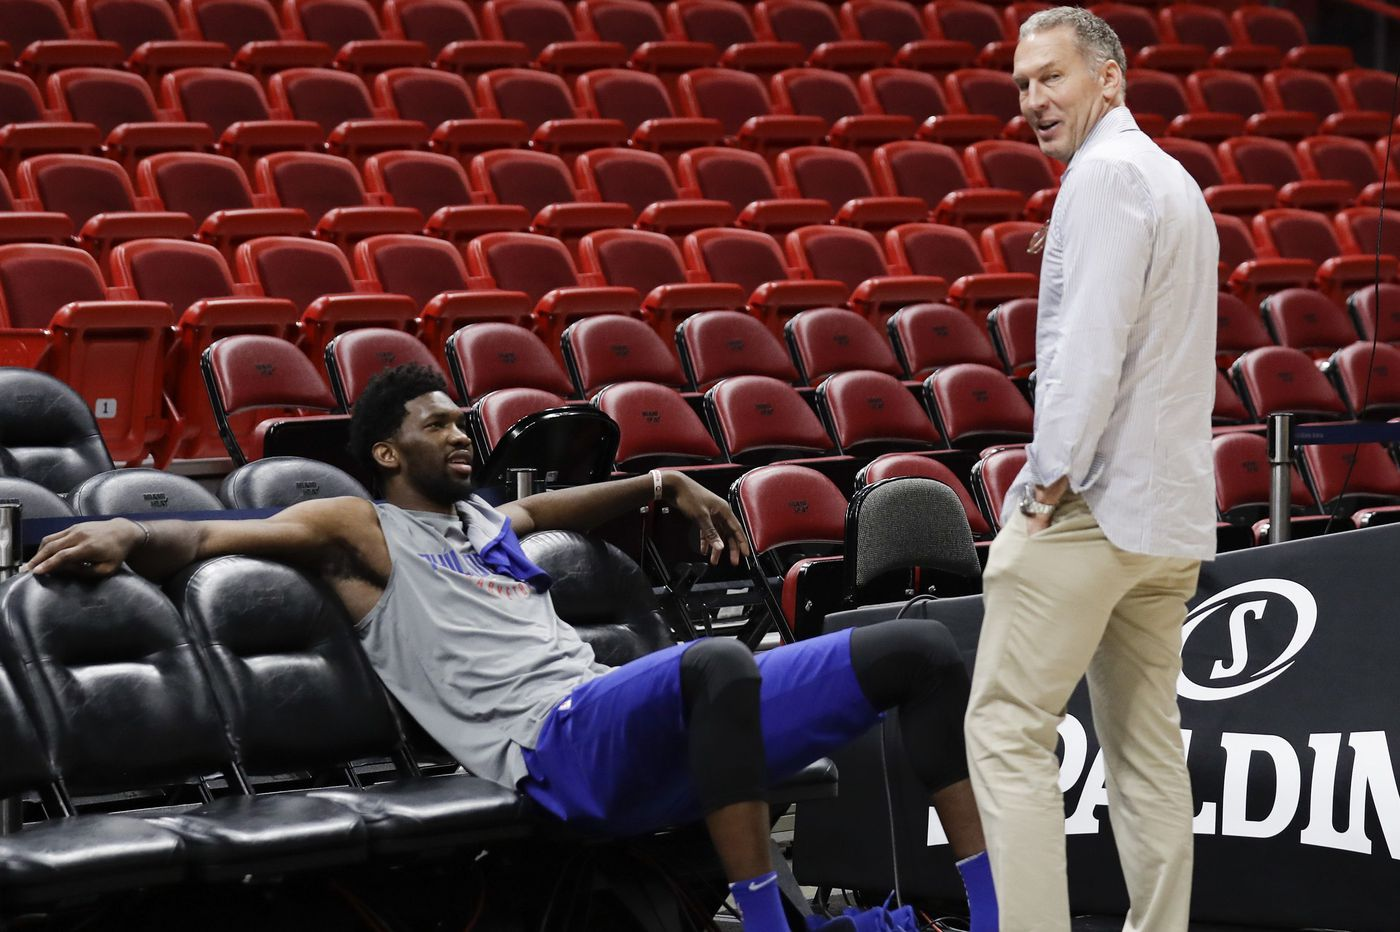 Joel Embiid says he learned how to shoot from 'random people' on YouTube